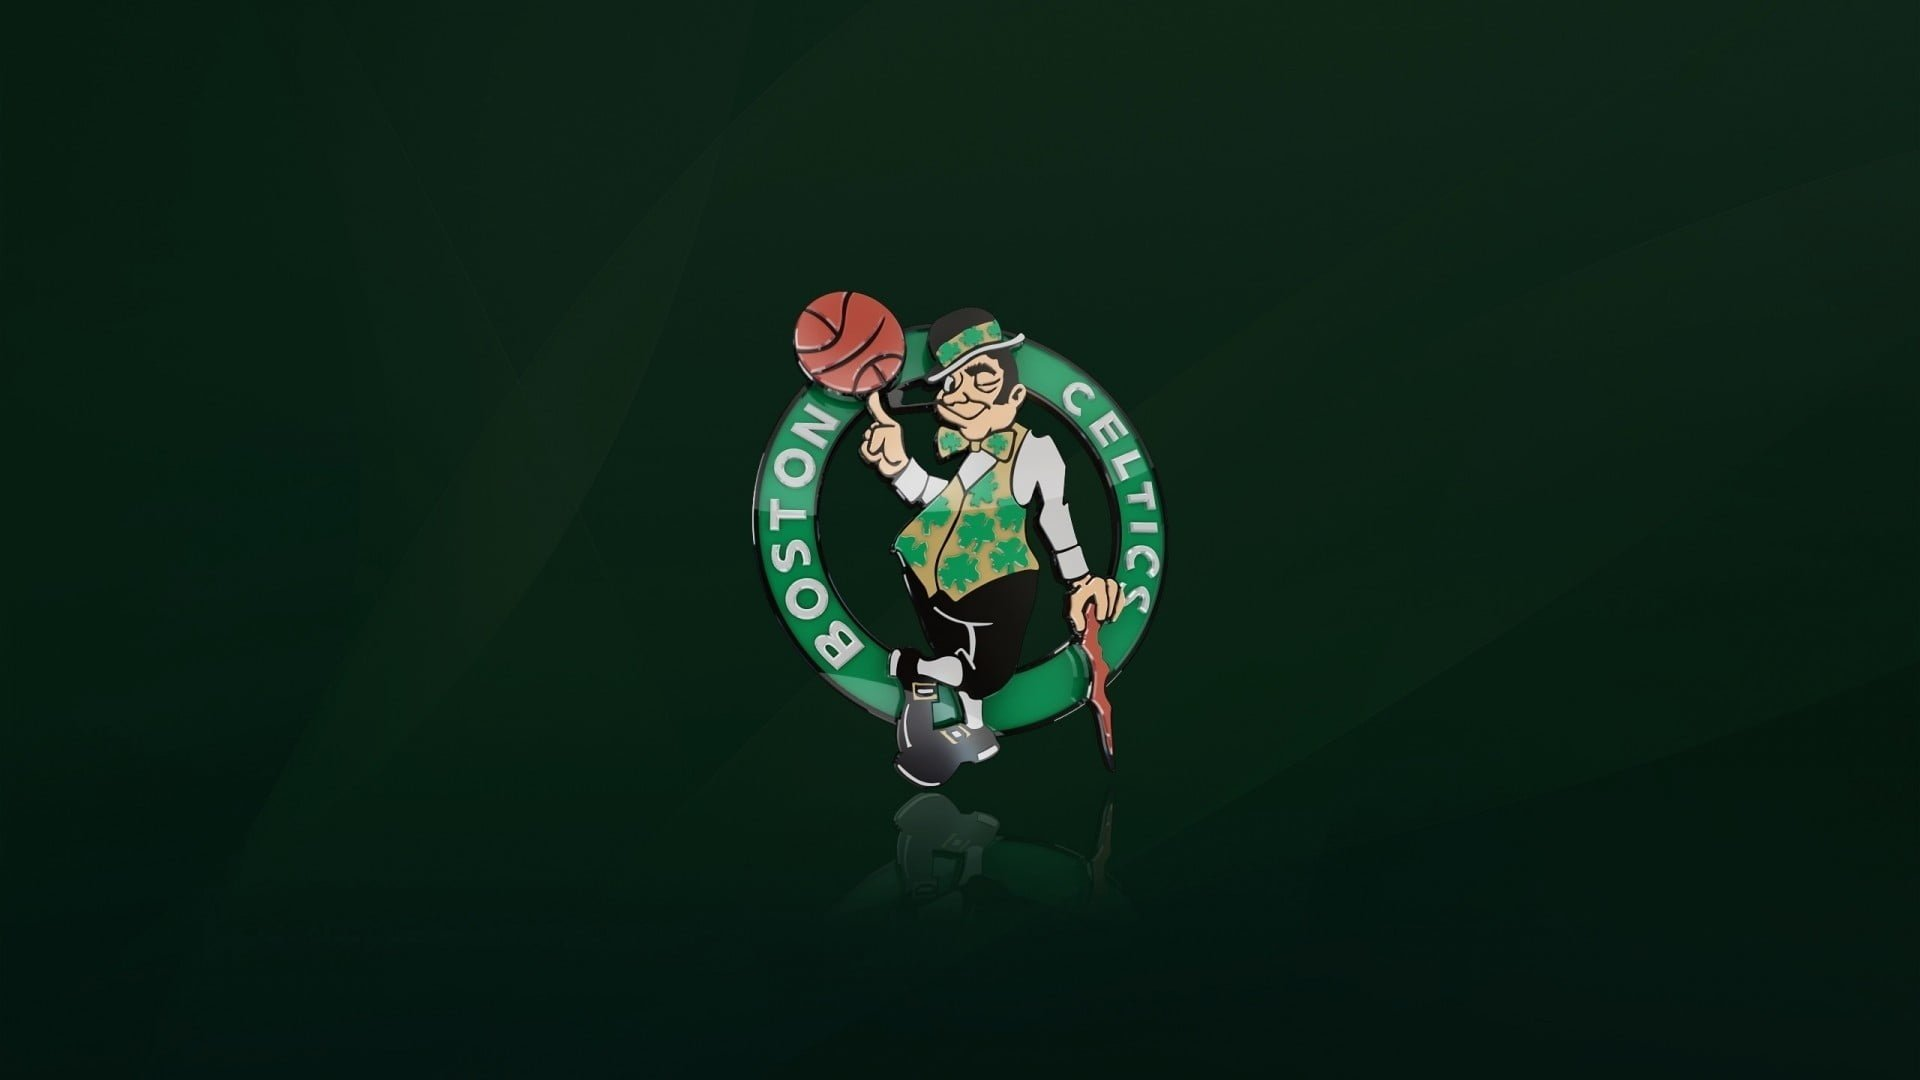 Dope Wallpapers Celtics